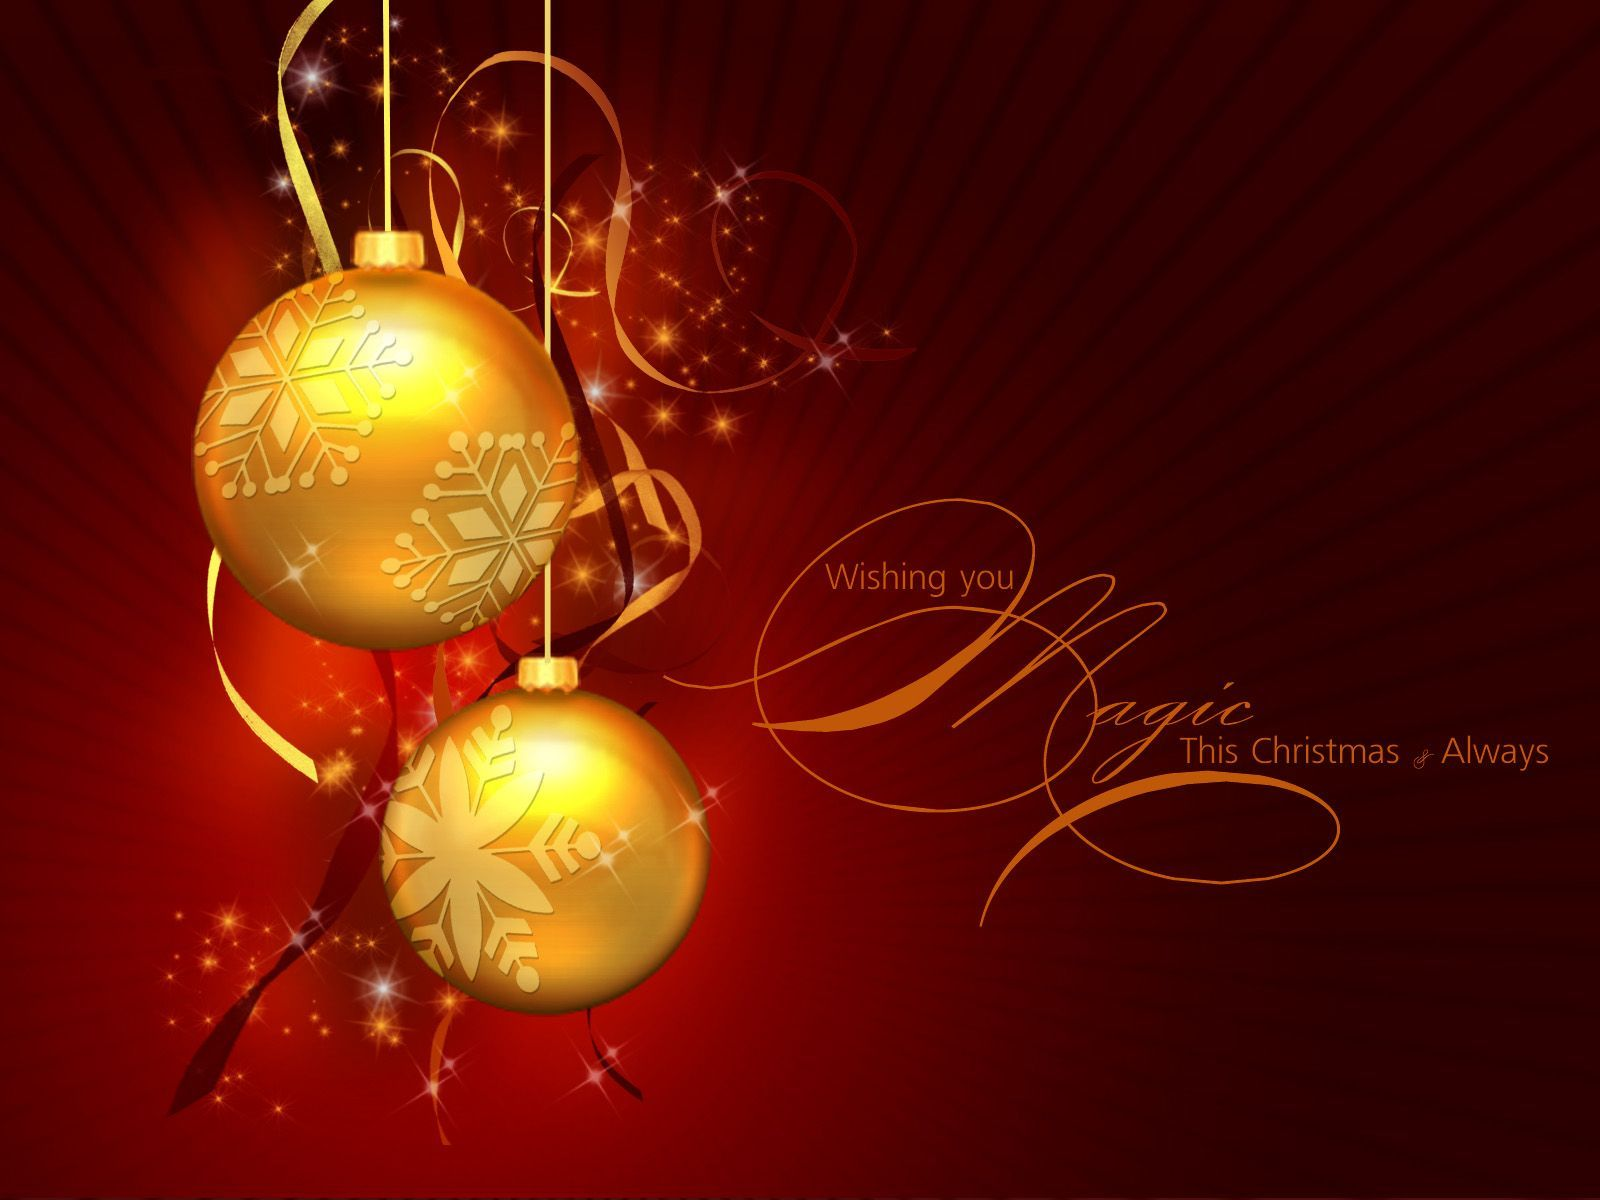 christmas ornaments | Christmas Ornament - Gold Wallpaper - Christian Wallpapers and ...